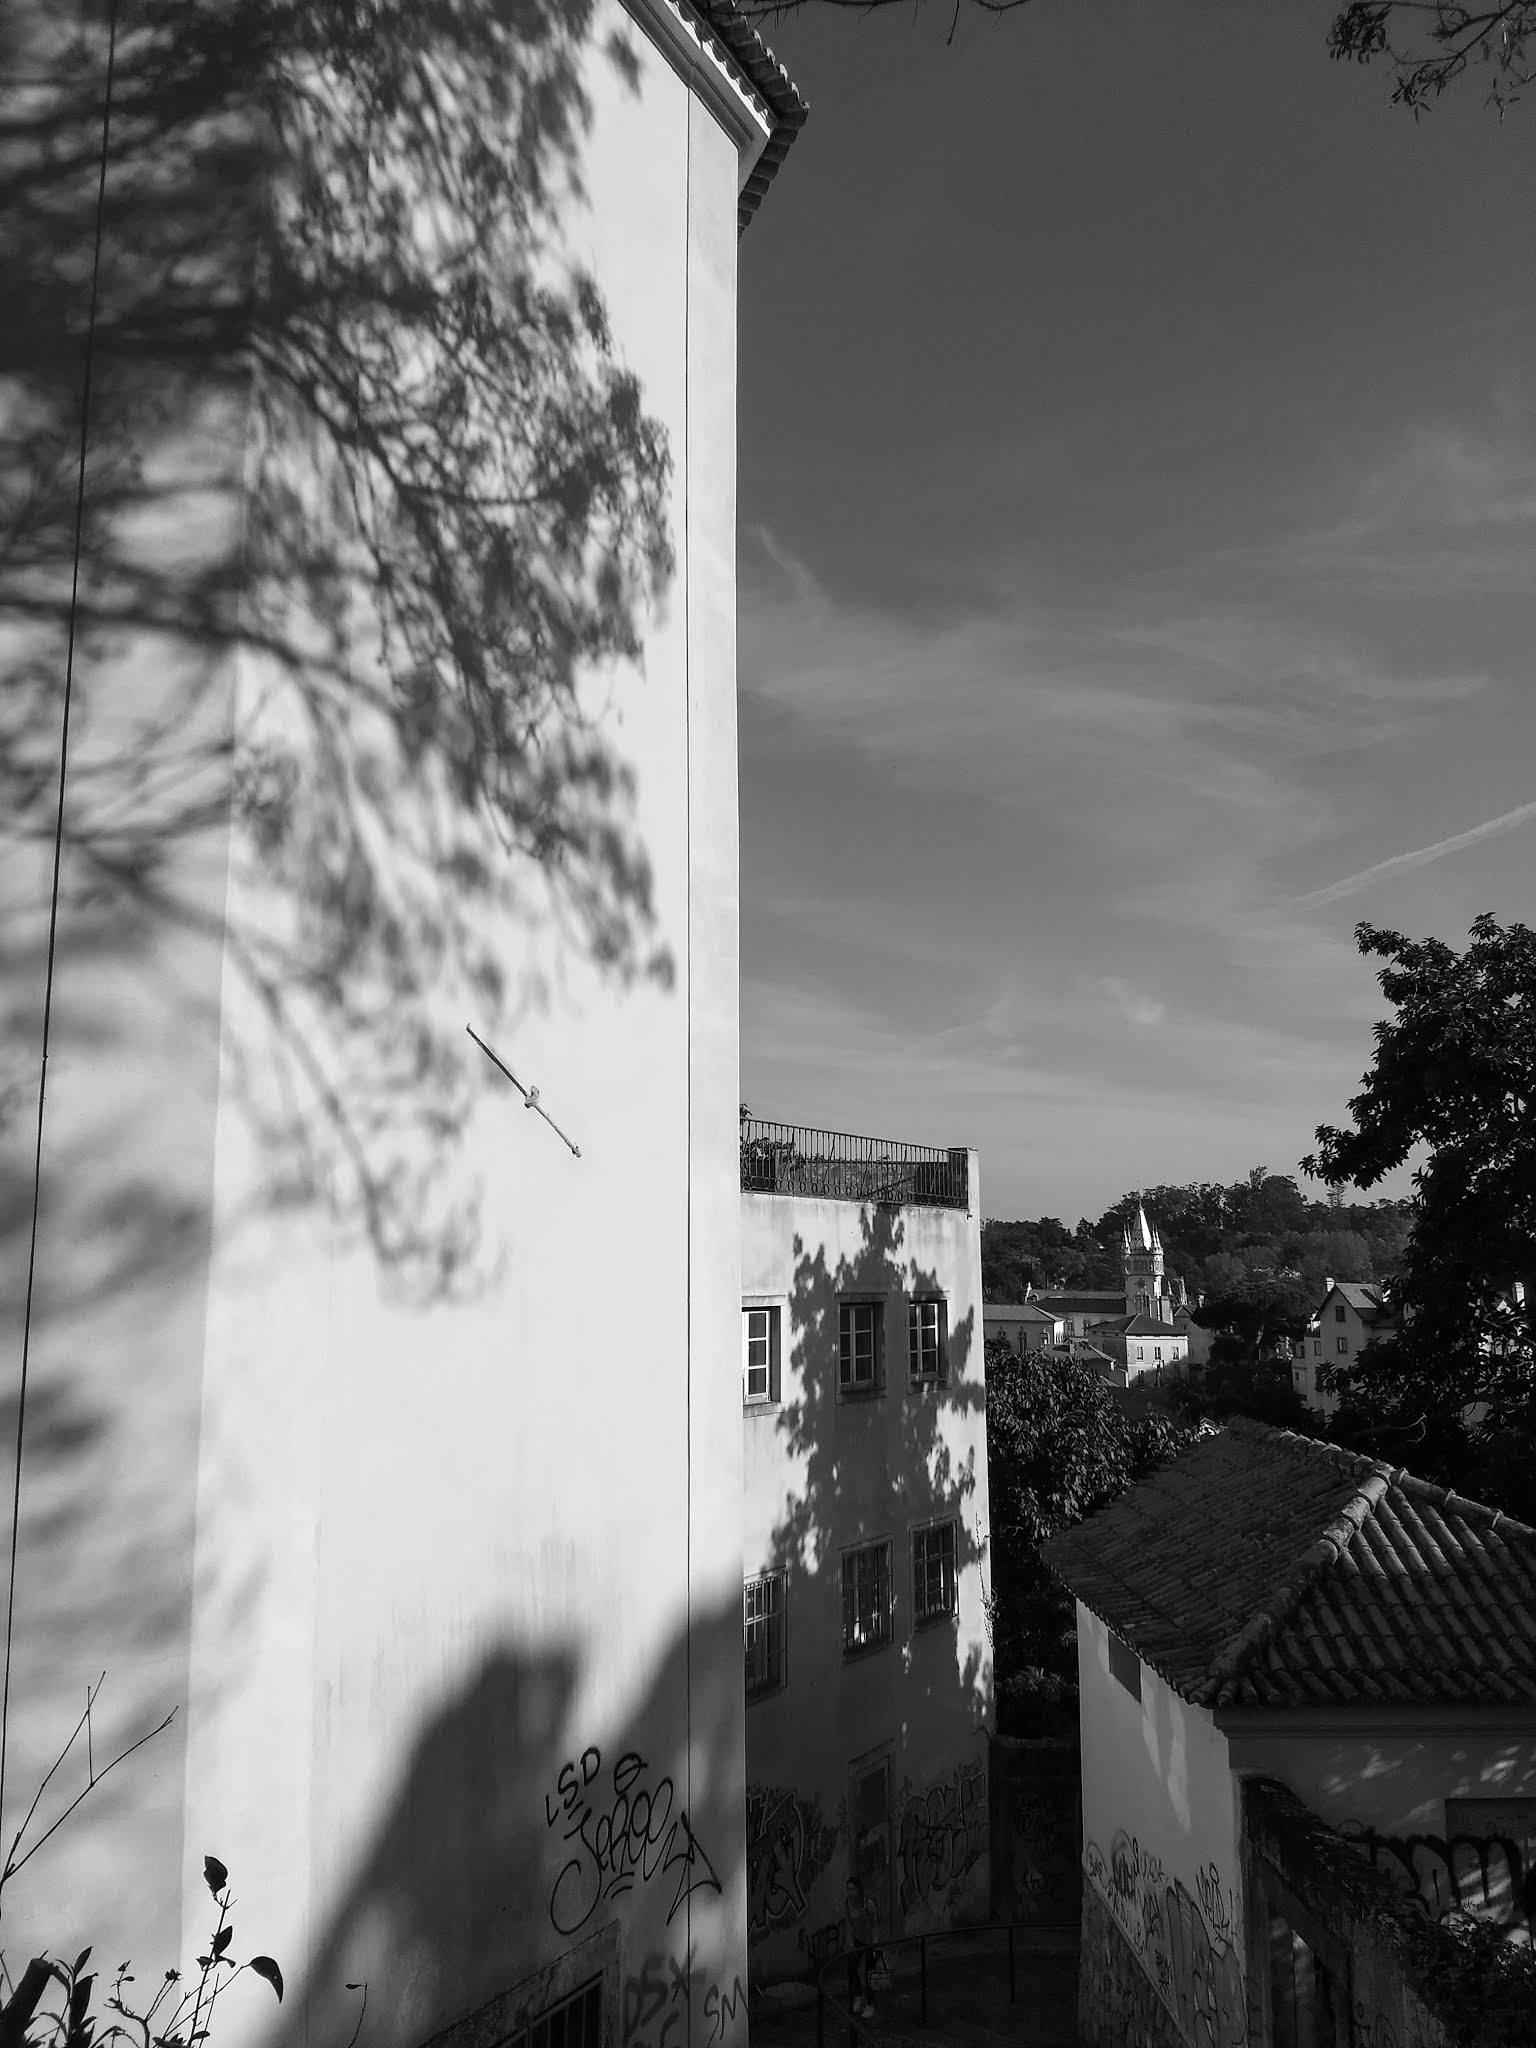 A shadow of a tree on a building in Sintra, Portugal in black and white.